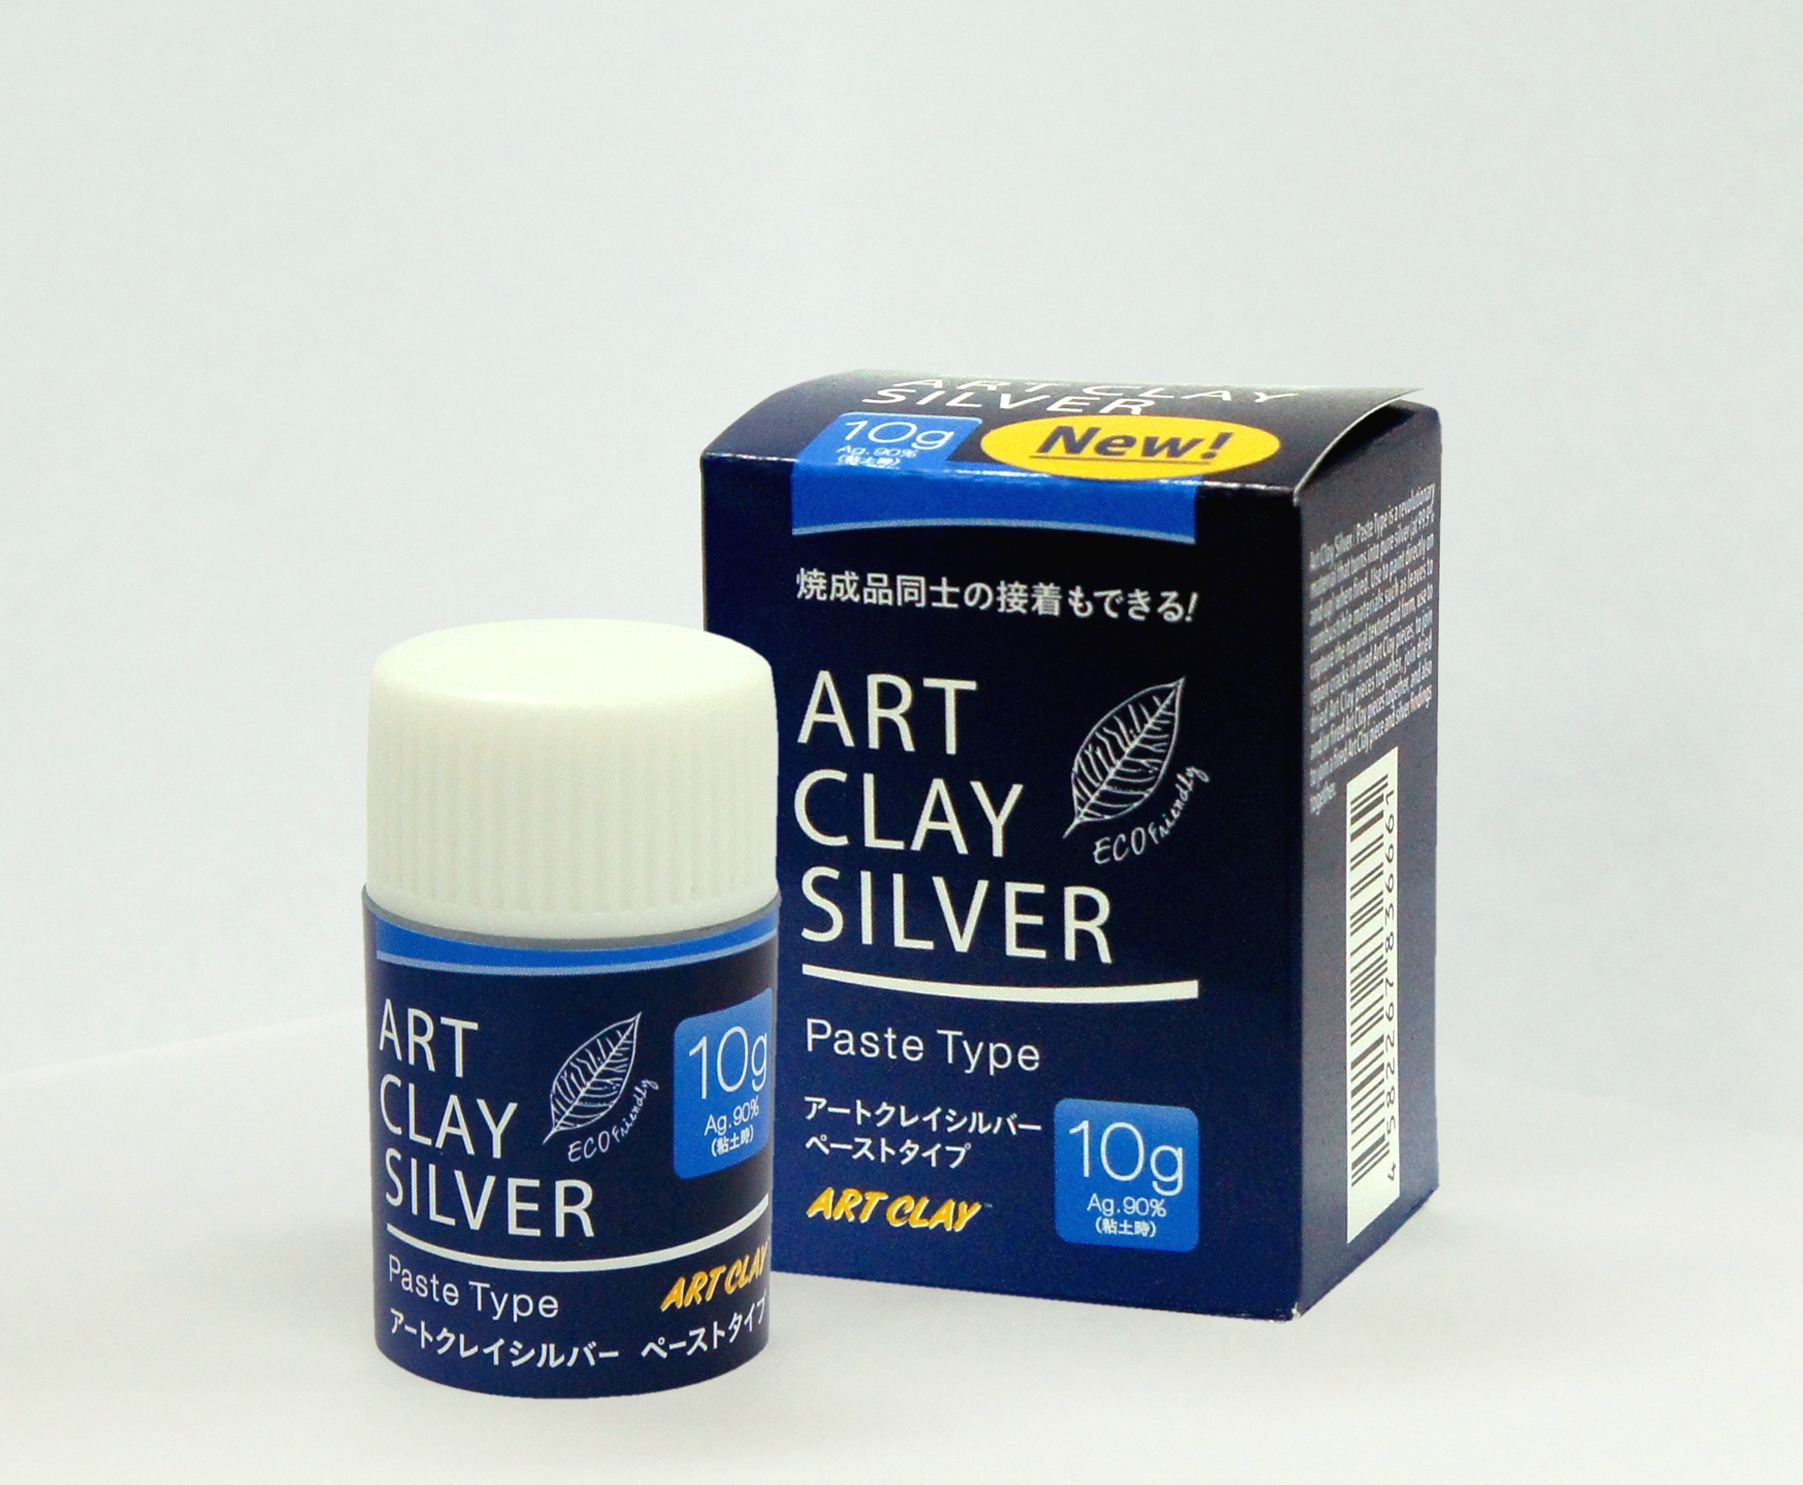 Art Clay Silver 650 New Formula - pasta,10g